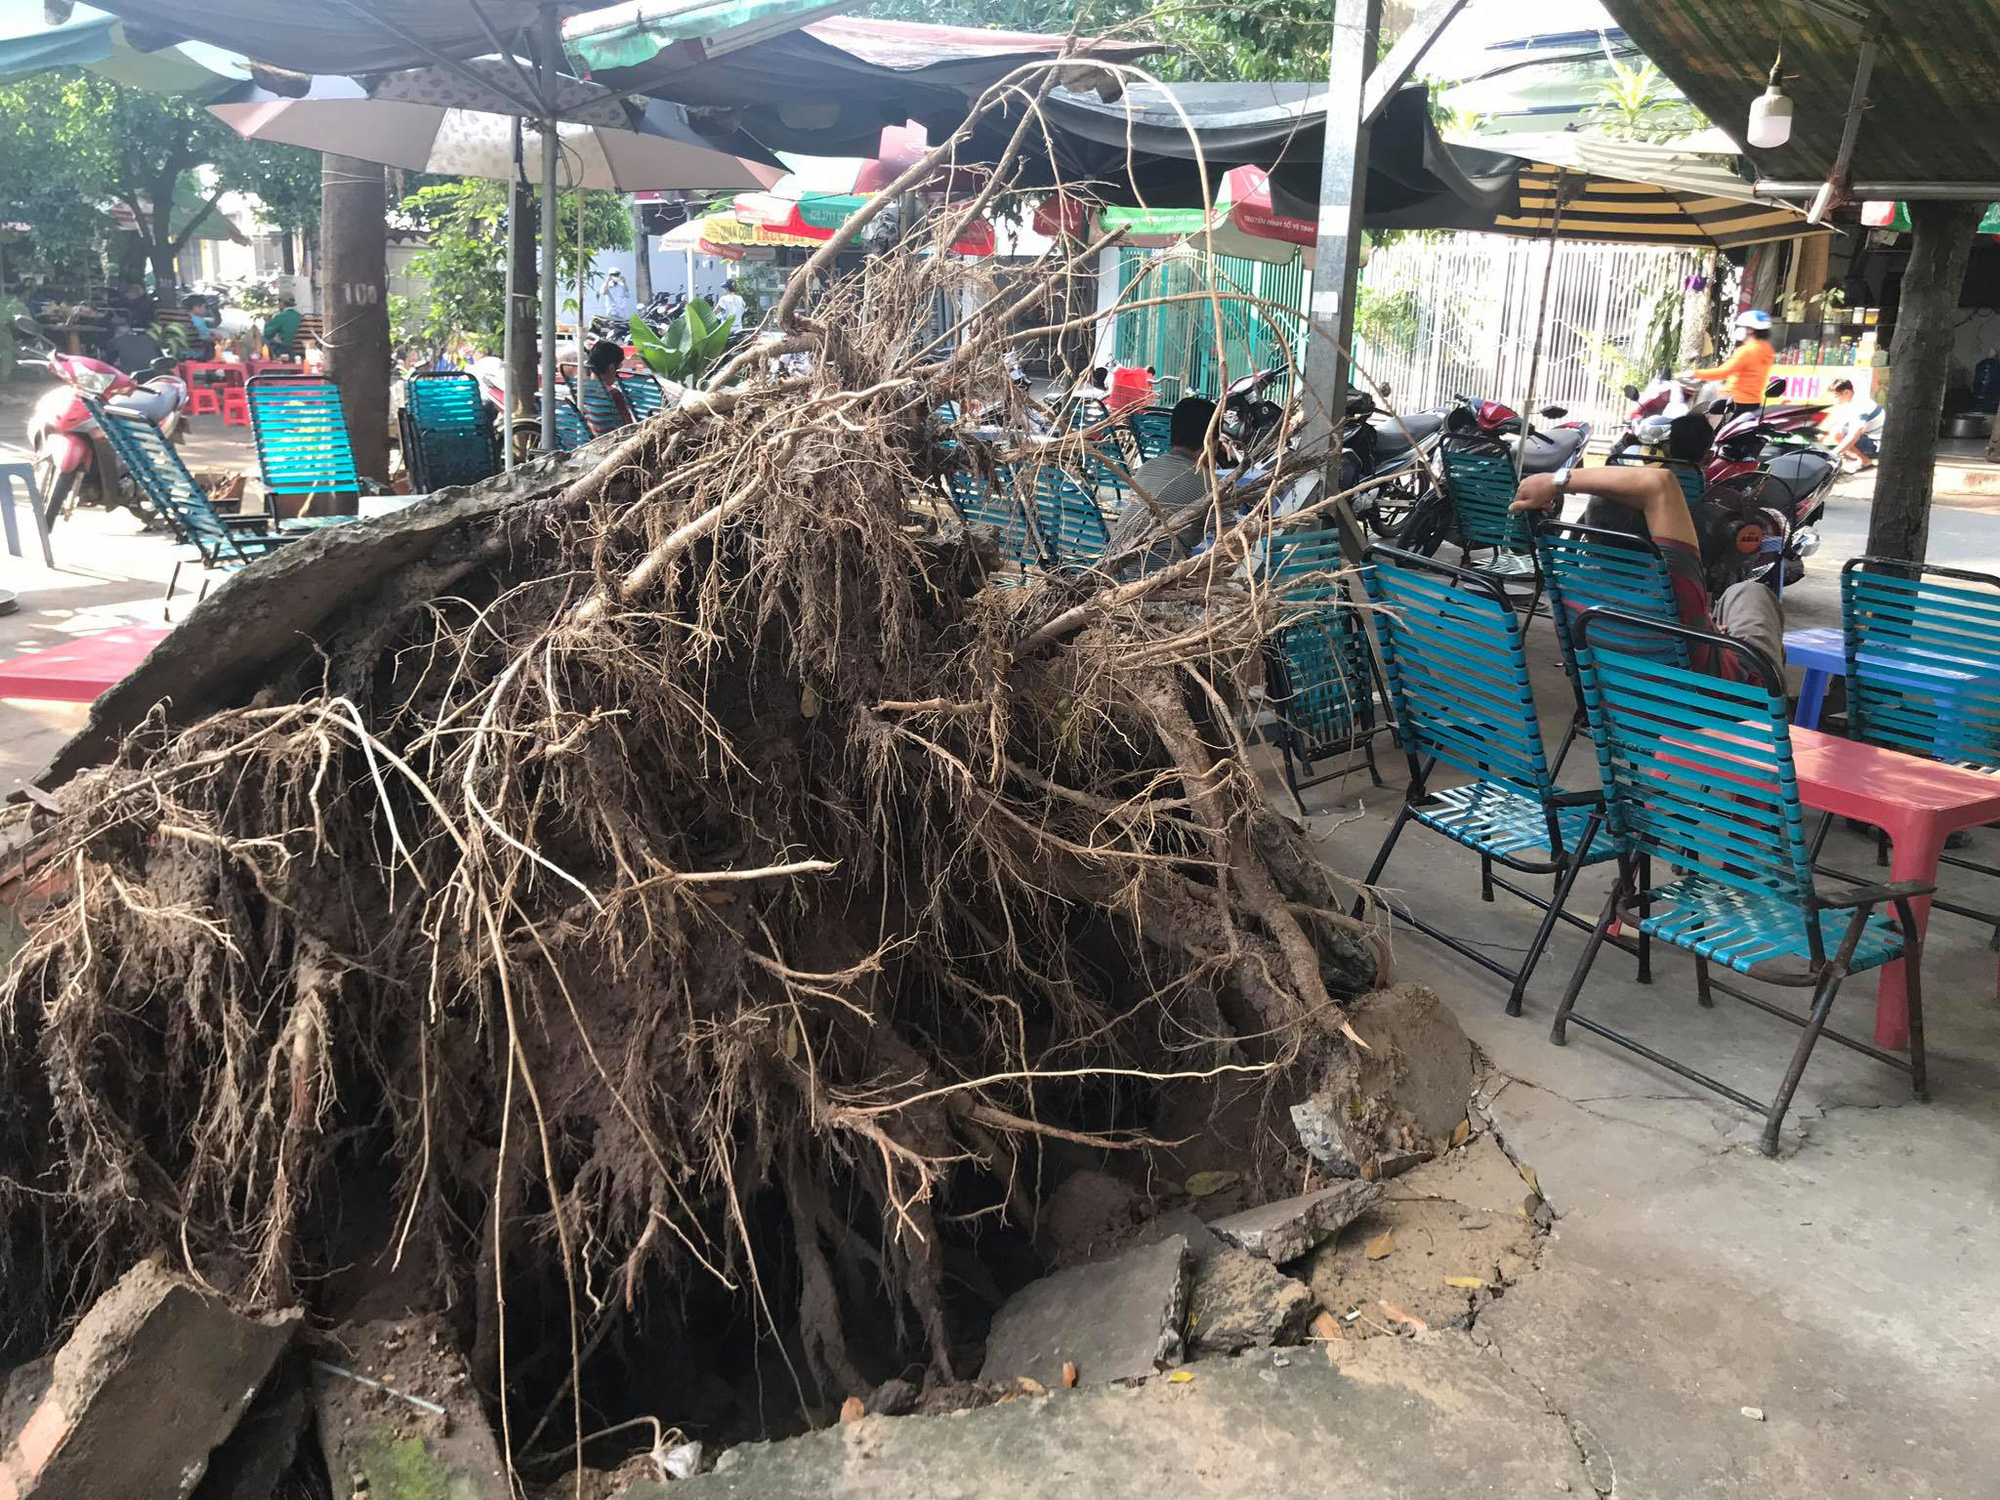 A tree, uprooted due to heavy rain, in seen in this photo taken in Go Vap District, Ho Chi Minh City. Photo: Le Phan / Tuoi Tre